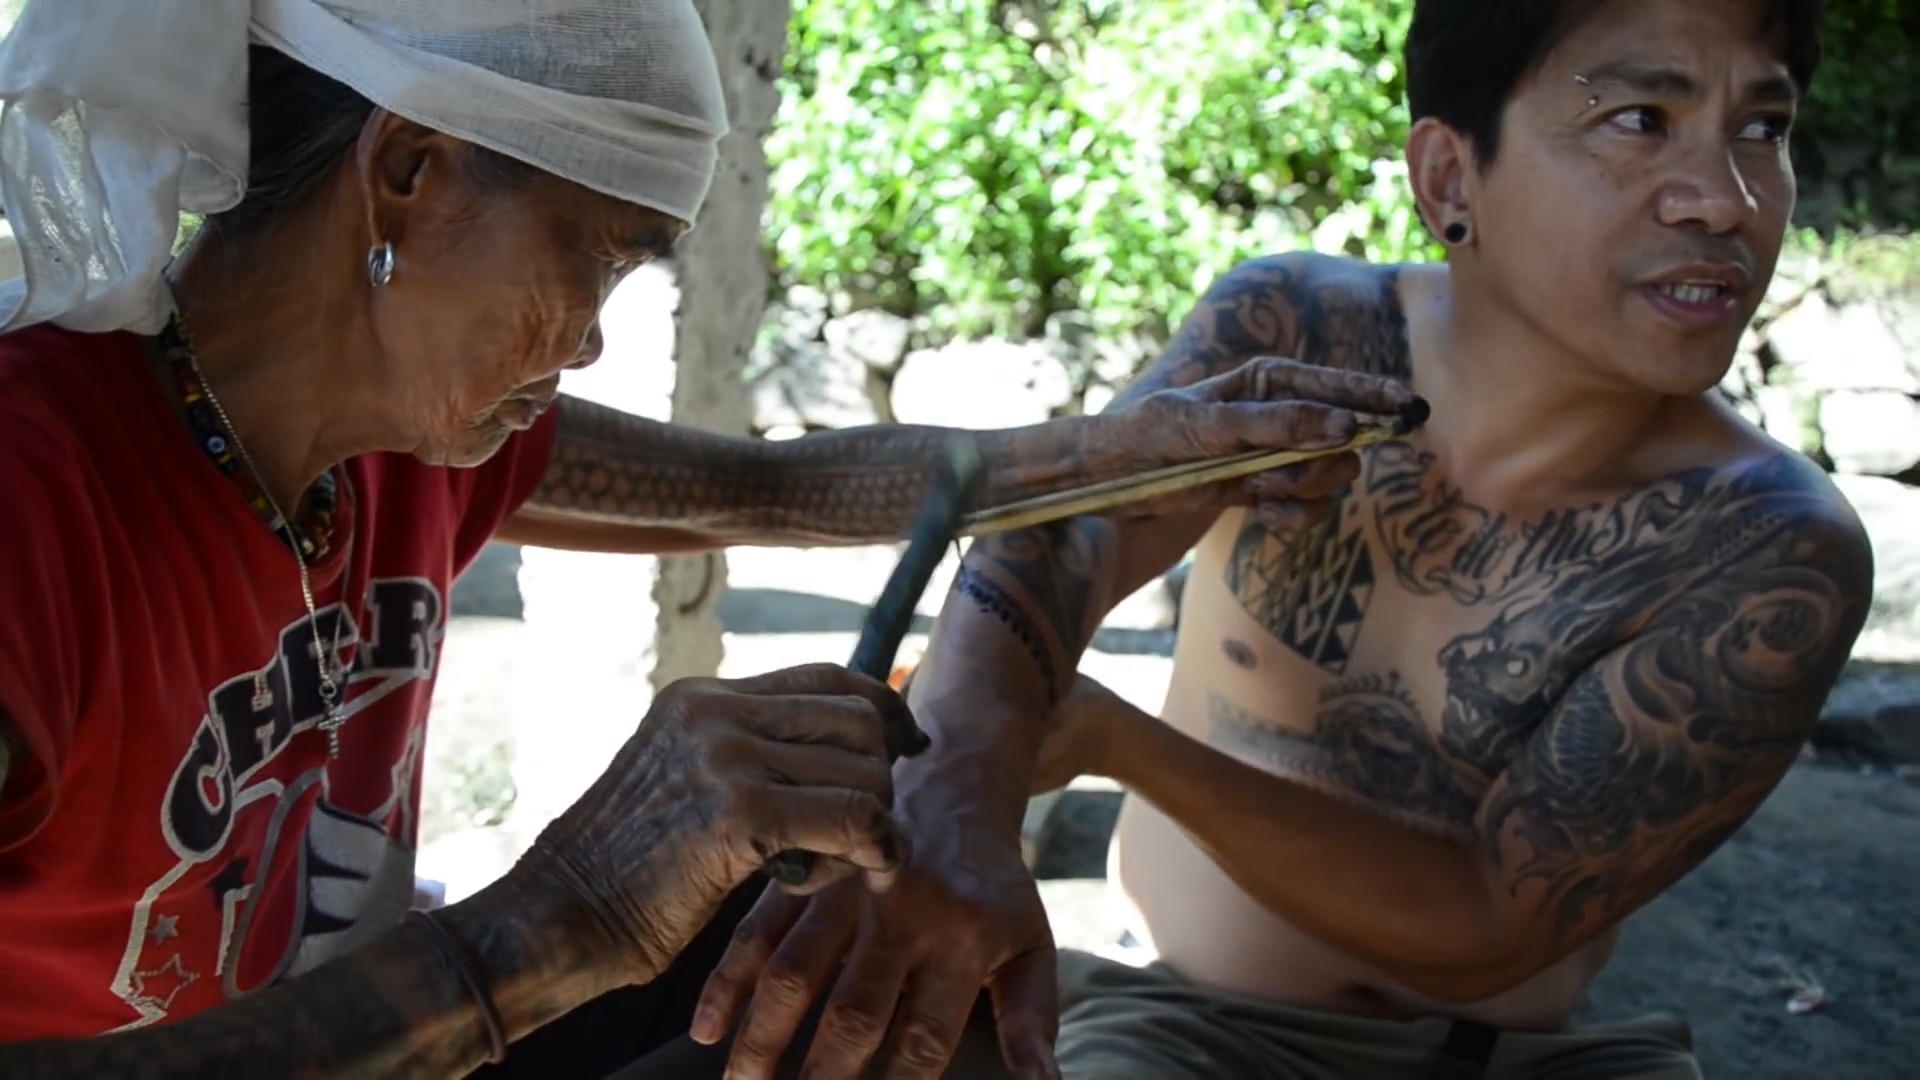 Mayo Landicho, right, receiving batok from Apo Whang-Od in the artist's village in the Kalinga province of the Philippines.